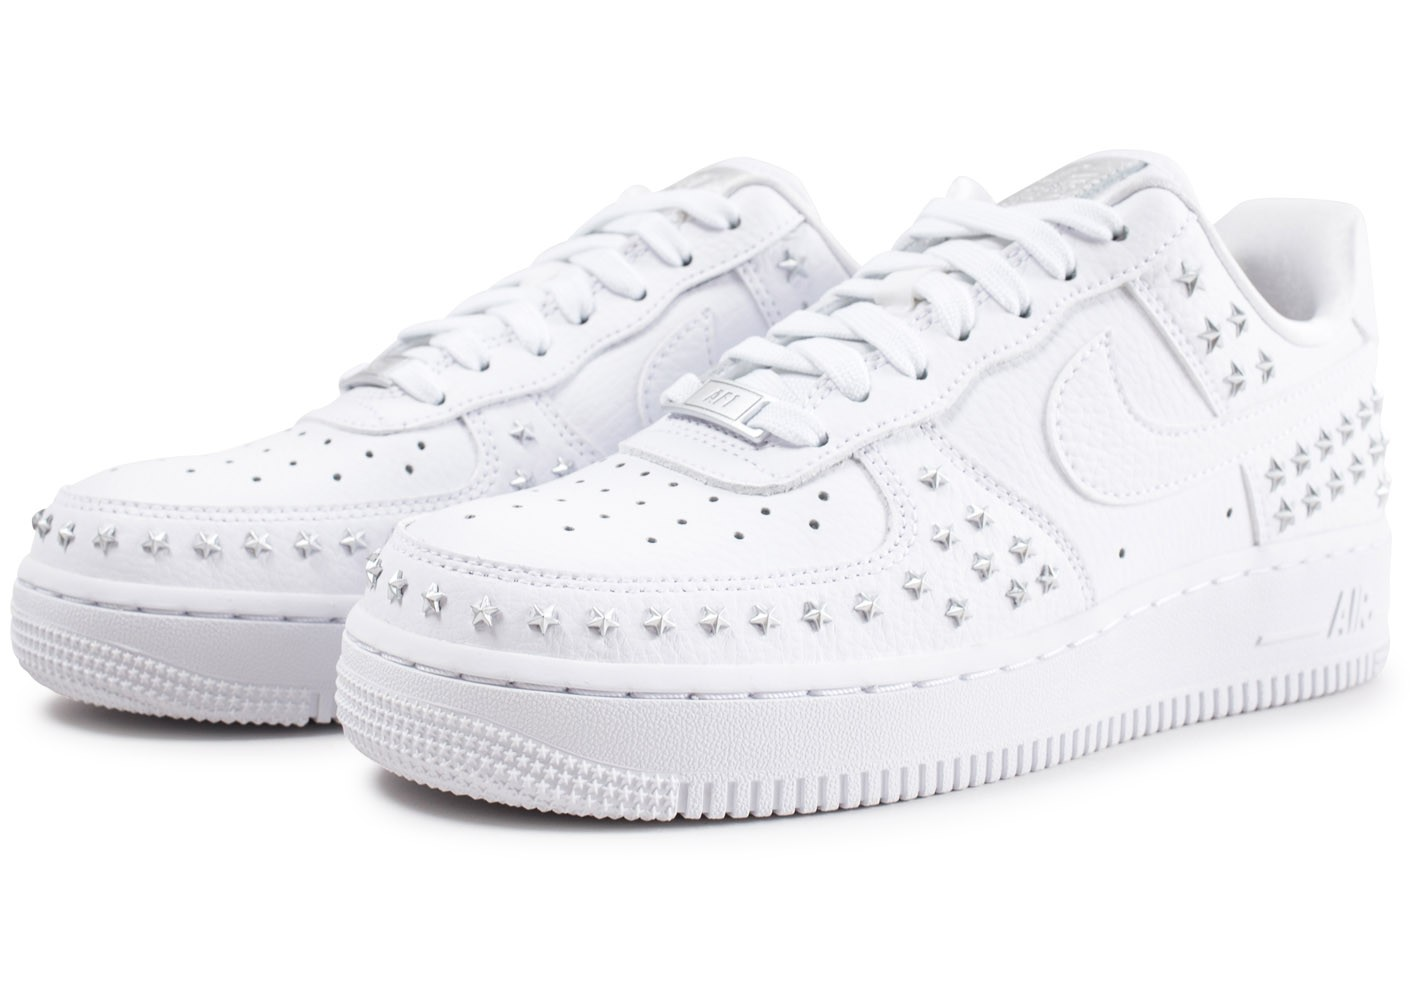 1 '07 Xx Air Blanche Femme Toutes Les Force Chaussures Nike 9YIH2EeWD